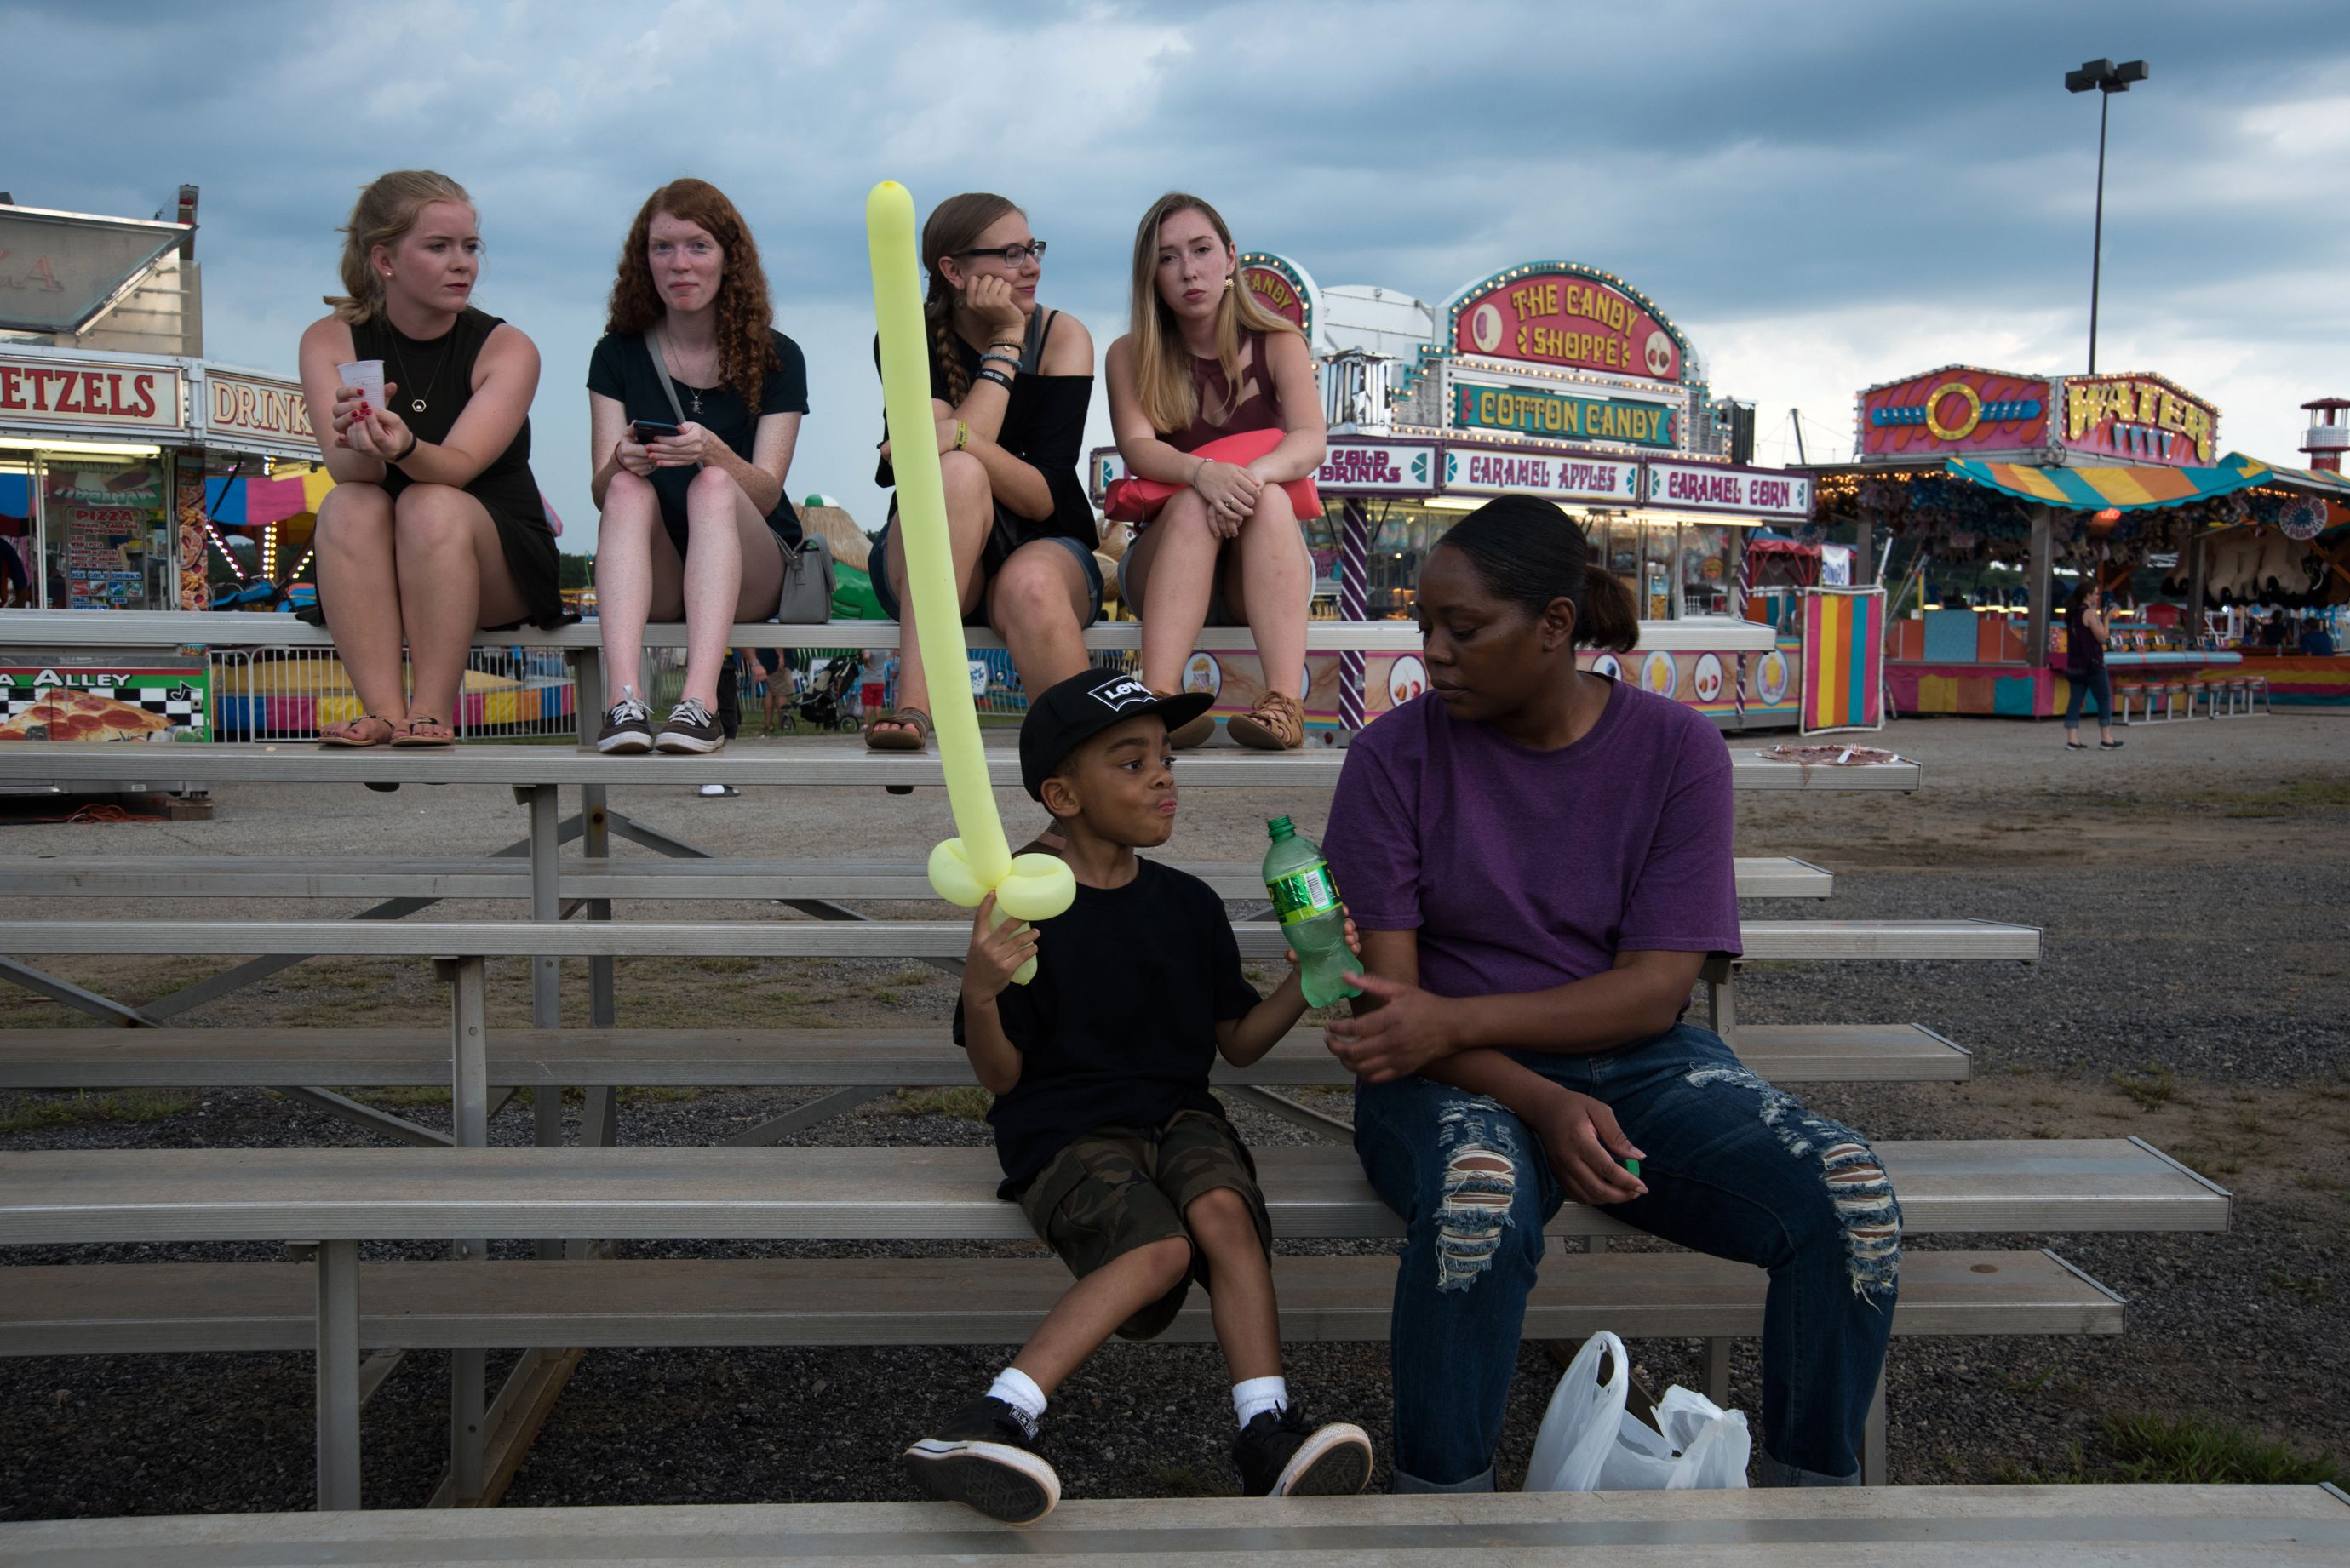 At the Upper South Carolina State Fair, held at the NASCAR Greenville Pickens Speedway. (6 of 10)